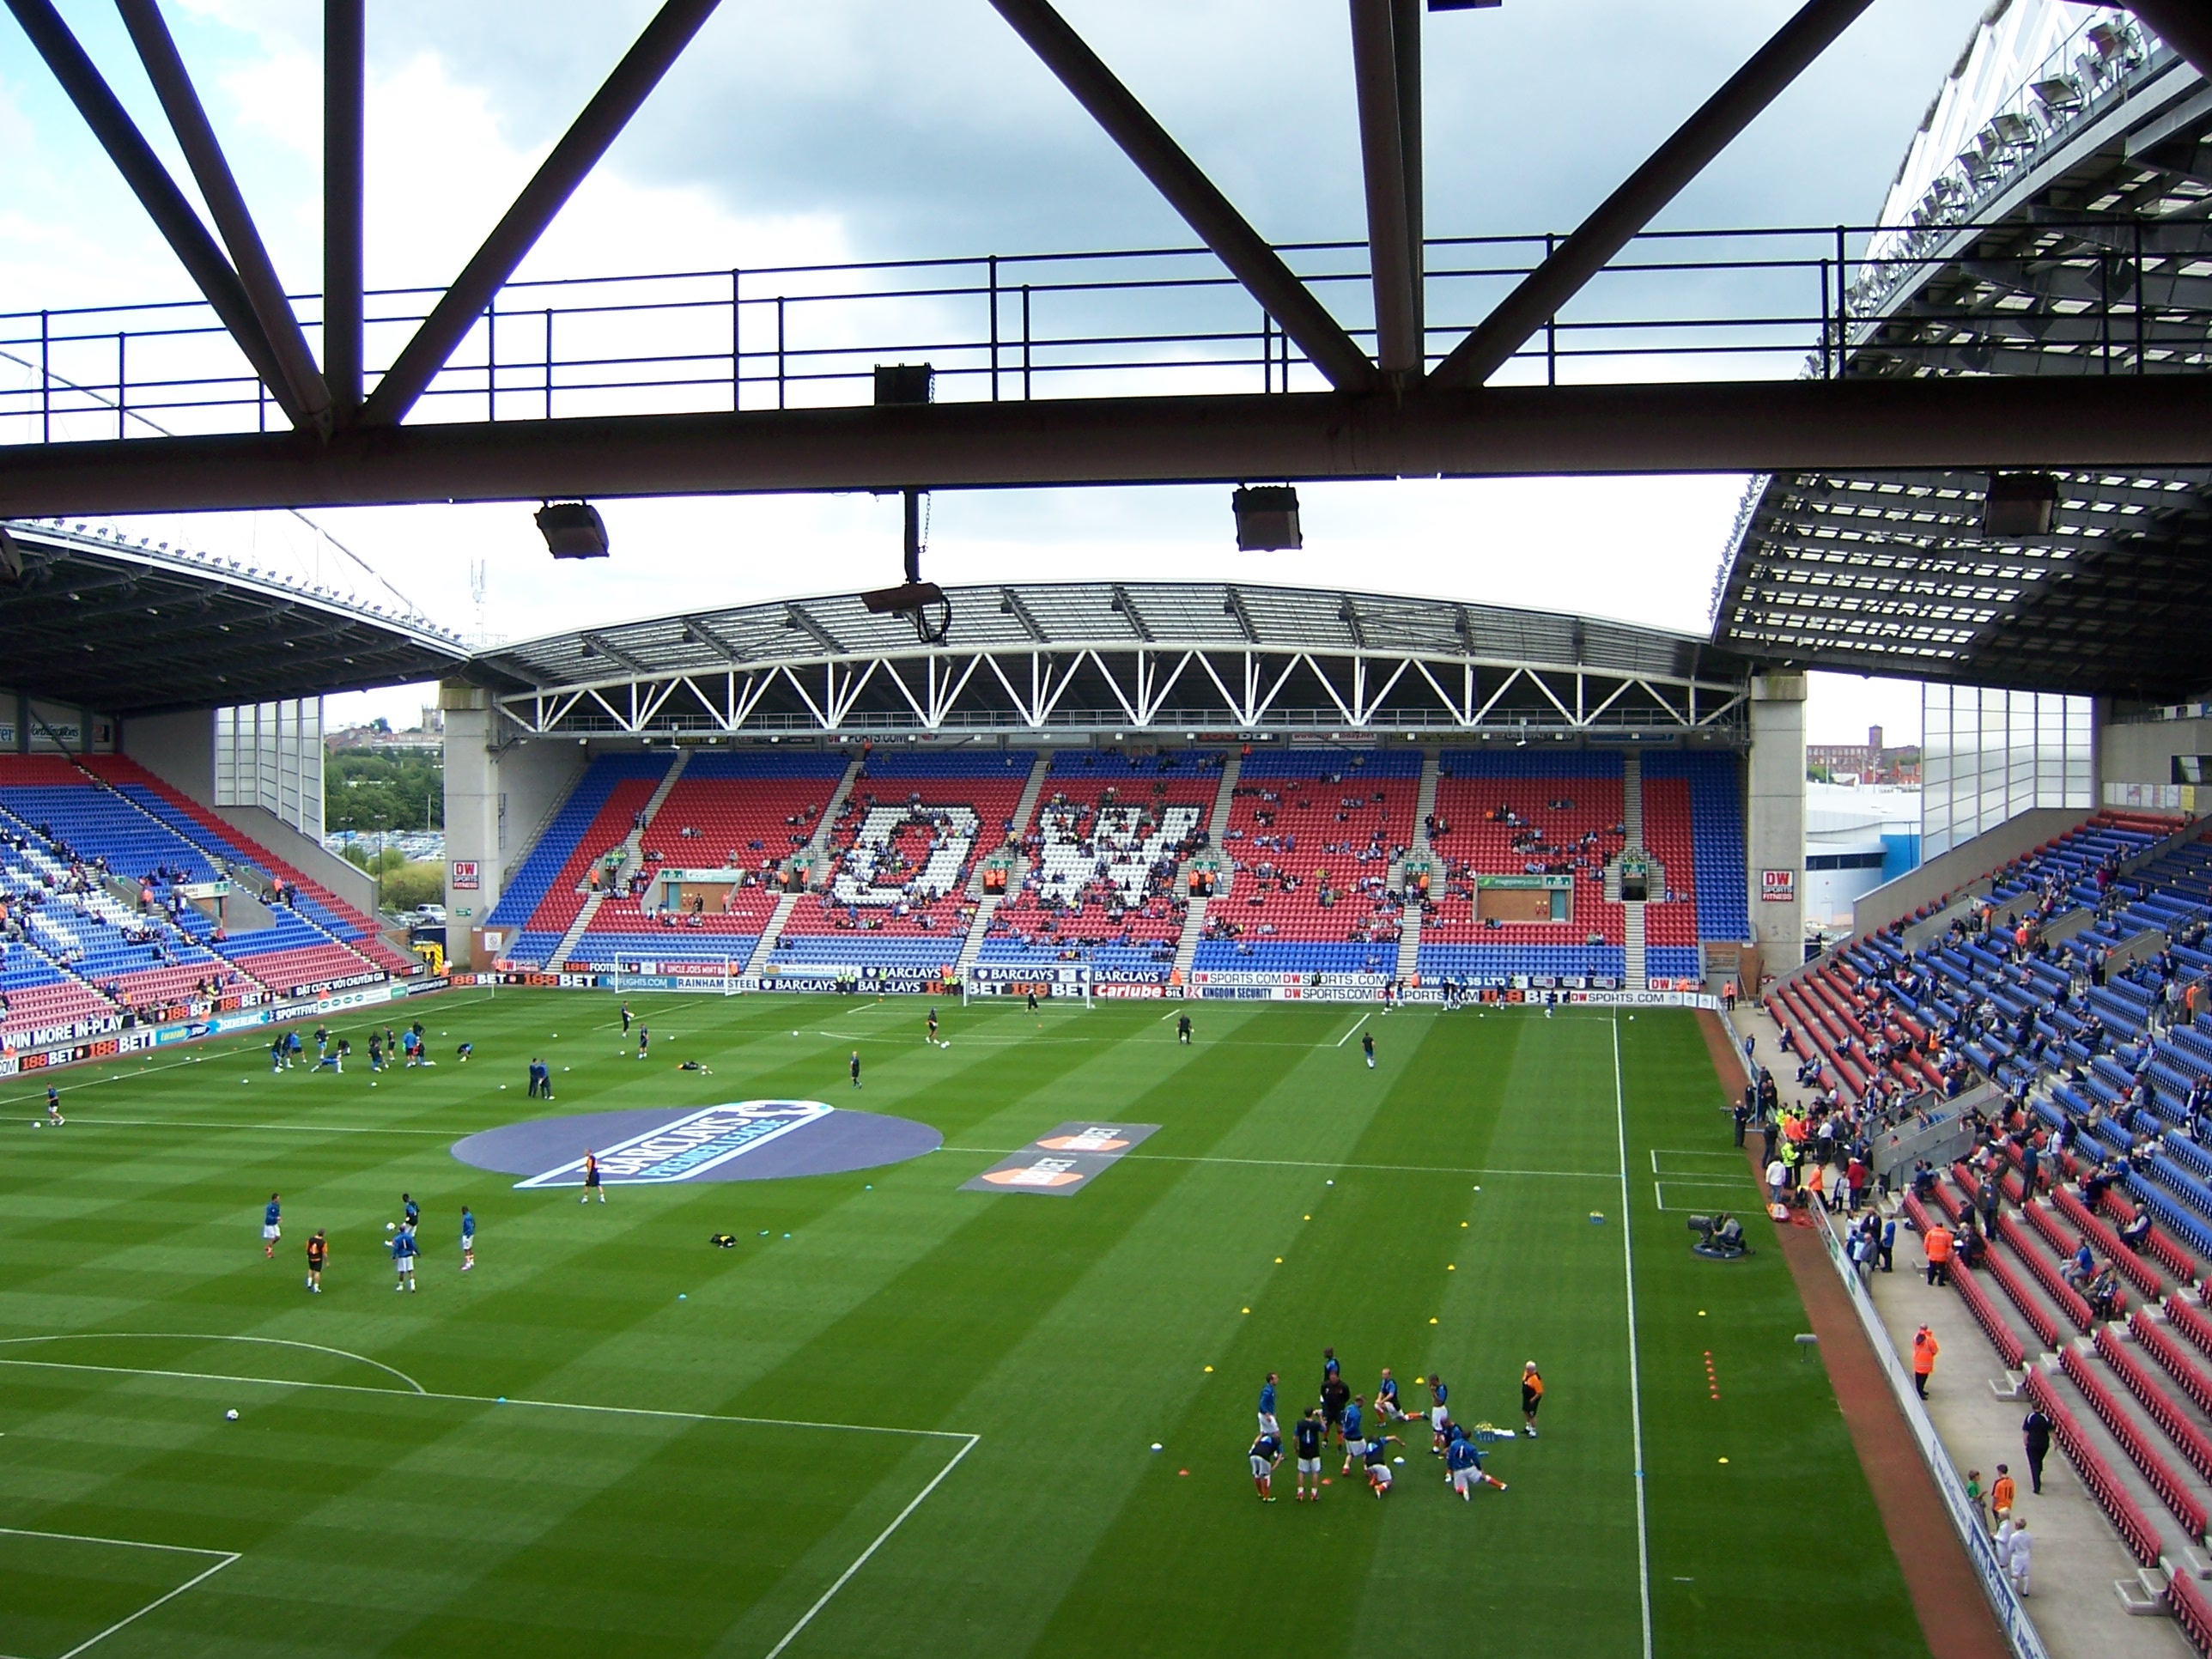 Warm_up_at_the_DW_Stadium,_Wigan_-_geograph.org.uk_-_2012508